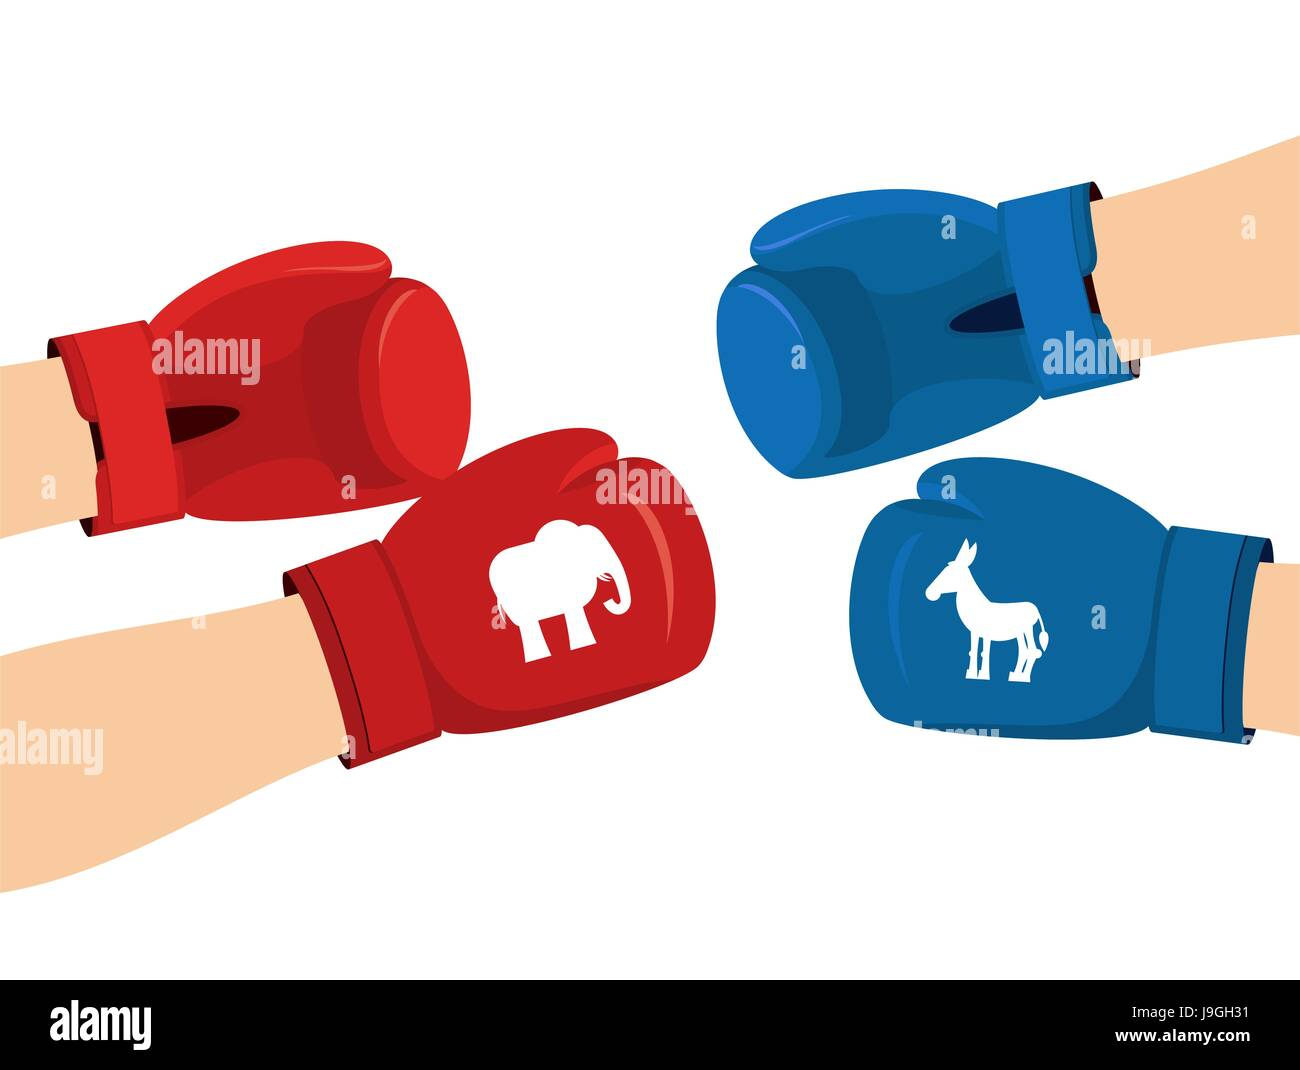 Elephant And Donkey Boxing Gloves Symbols Of Usa Political Party